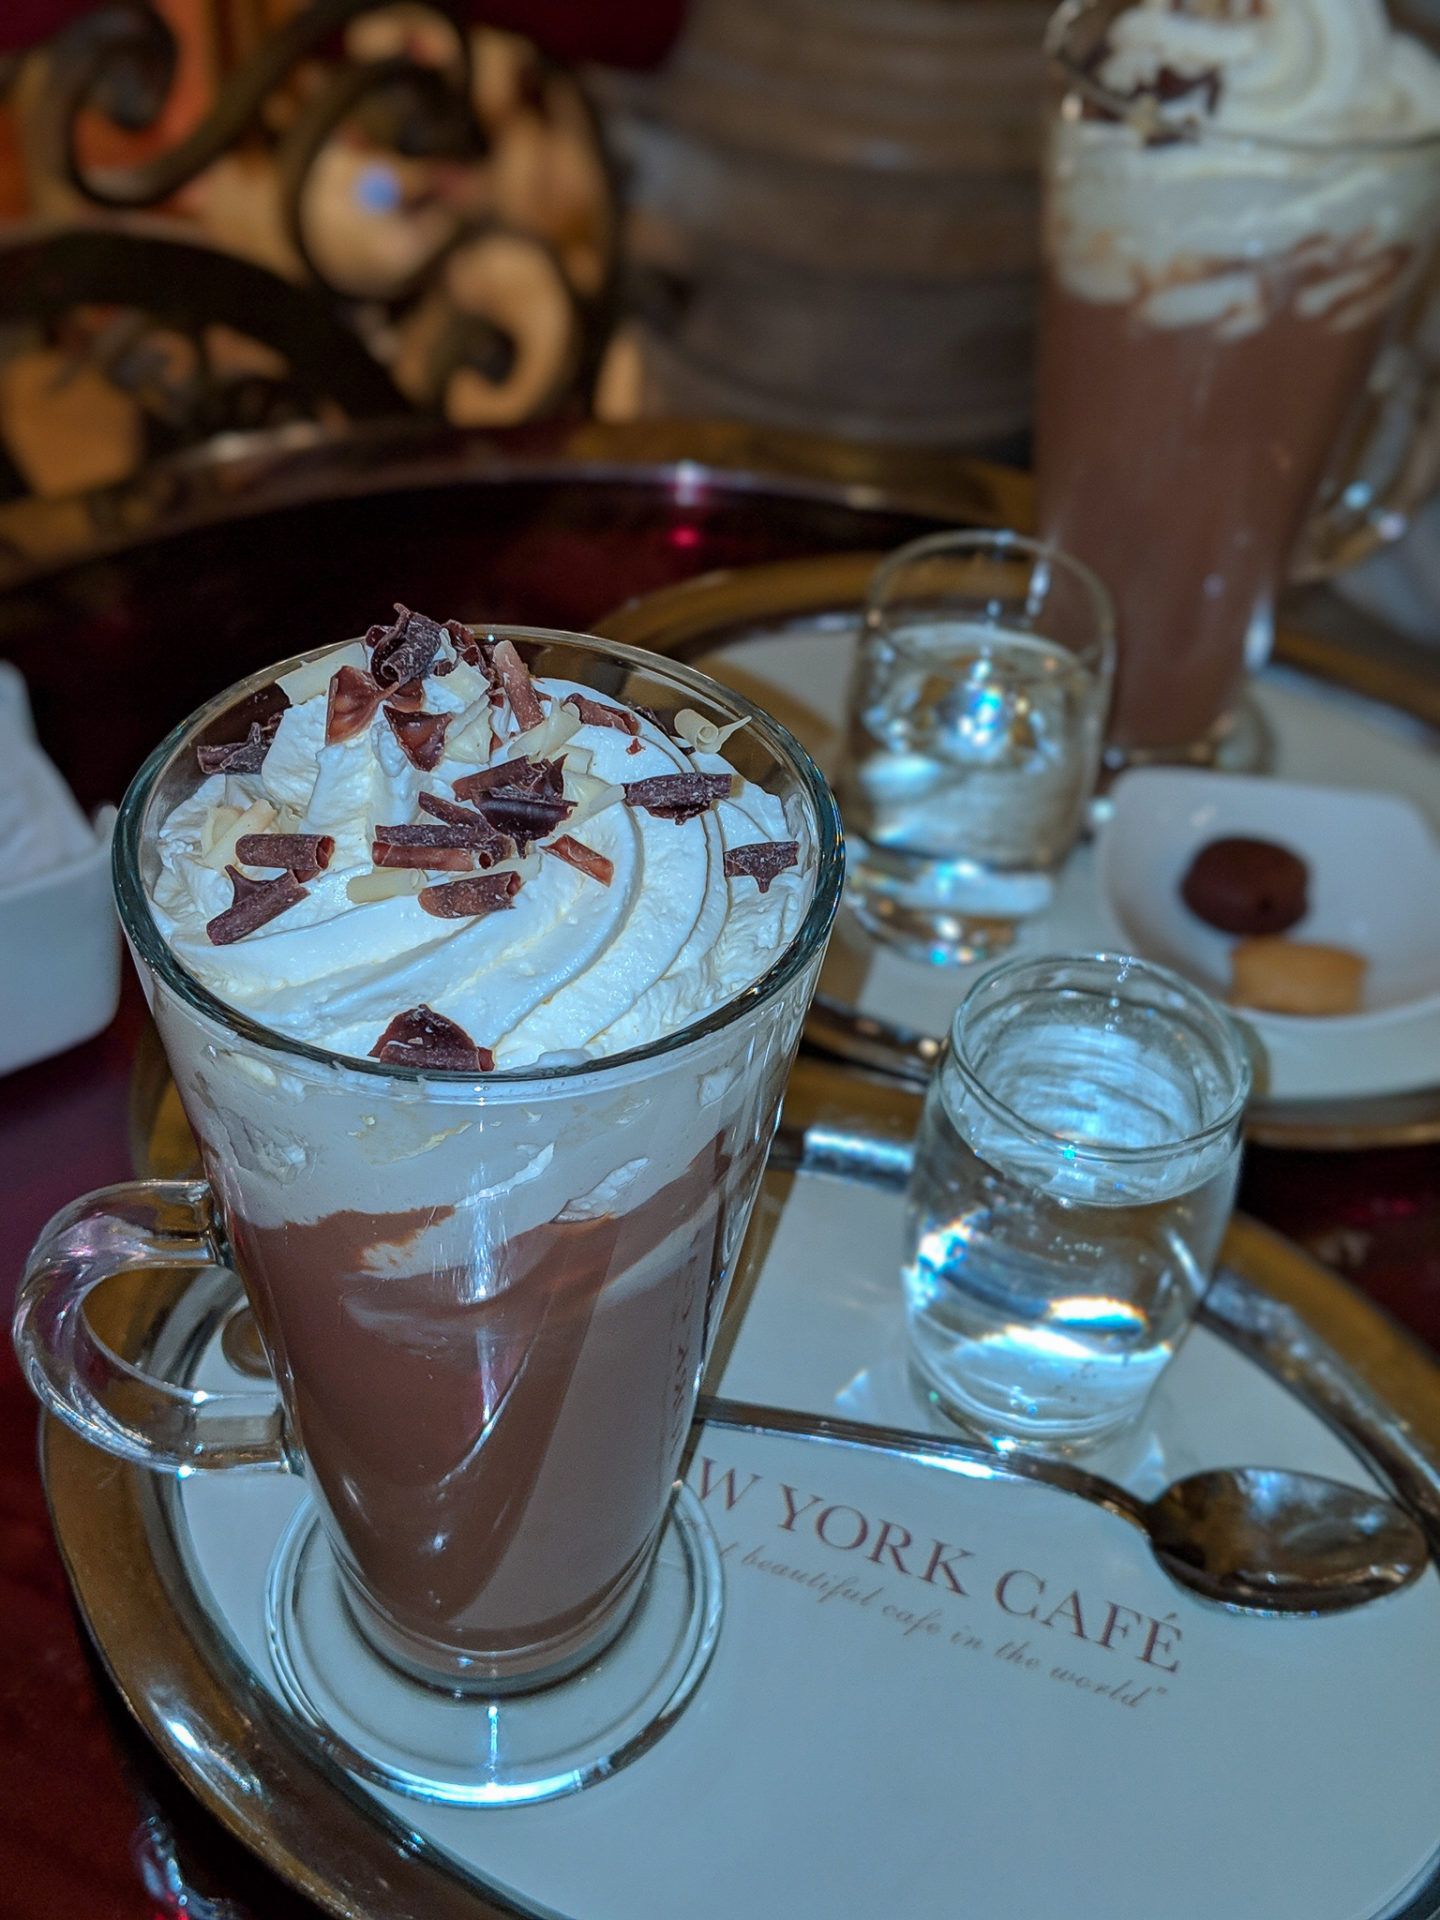 New york cafe budapest hot chocolate review blog robbienroute travel luxury